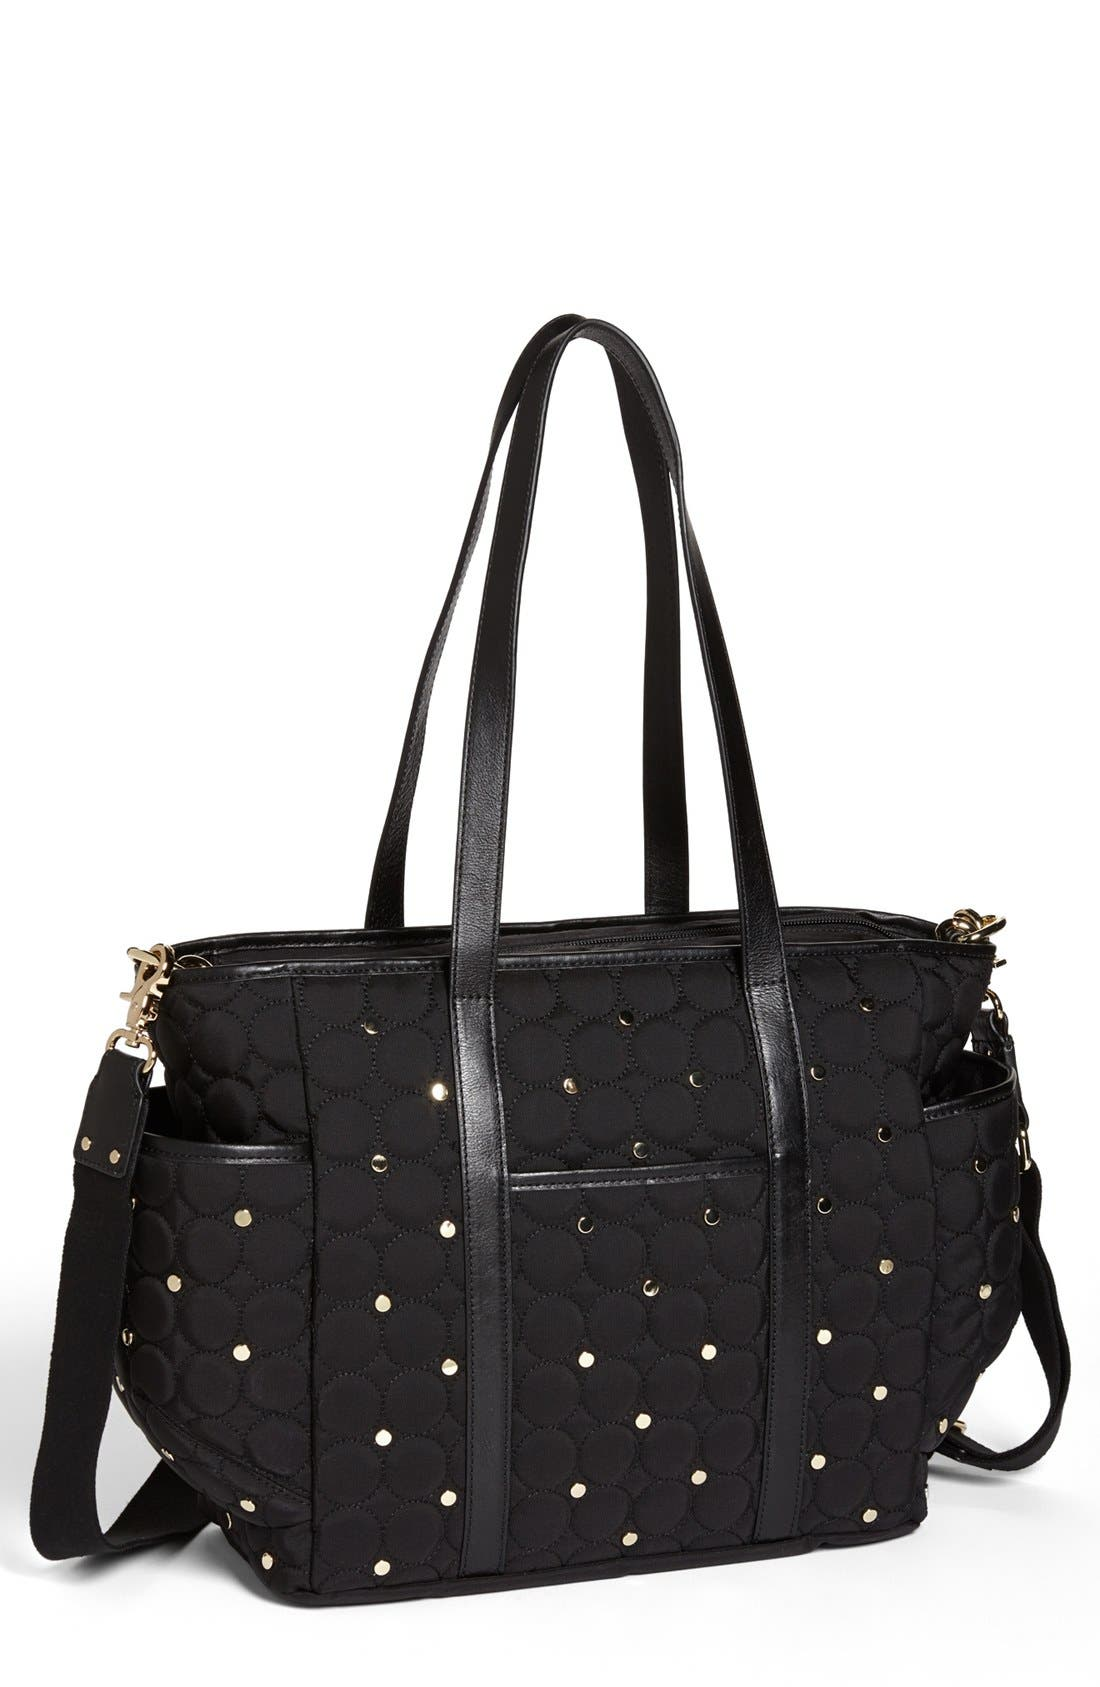 Alternate Image 1 Selected - Rebecca Minkoff 'Marissa' Baby Bag